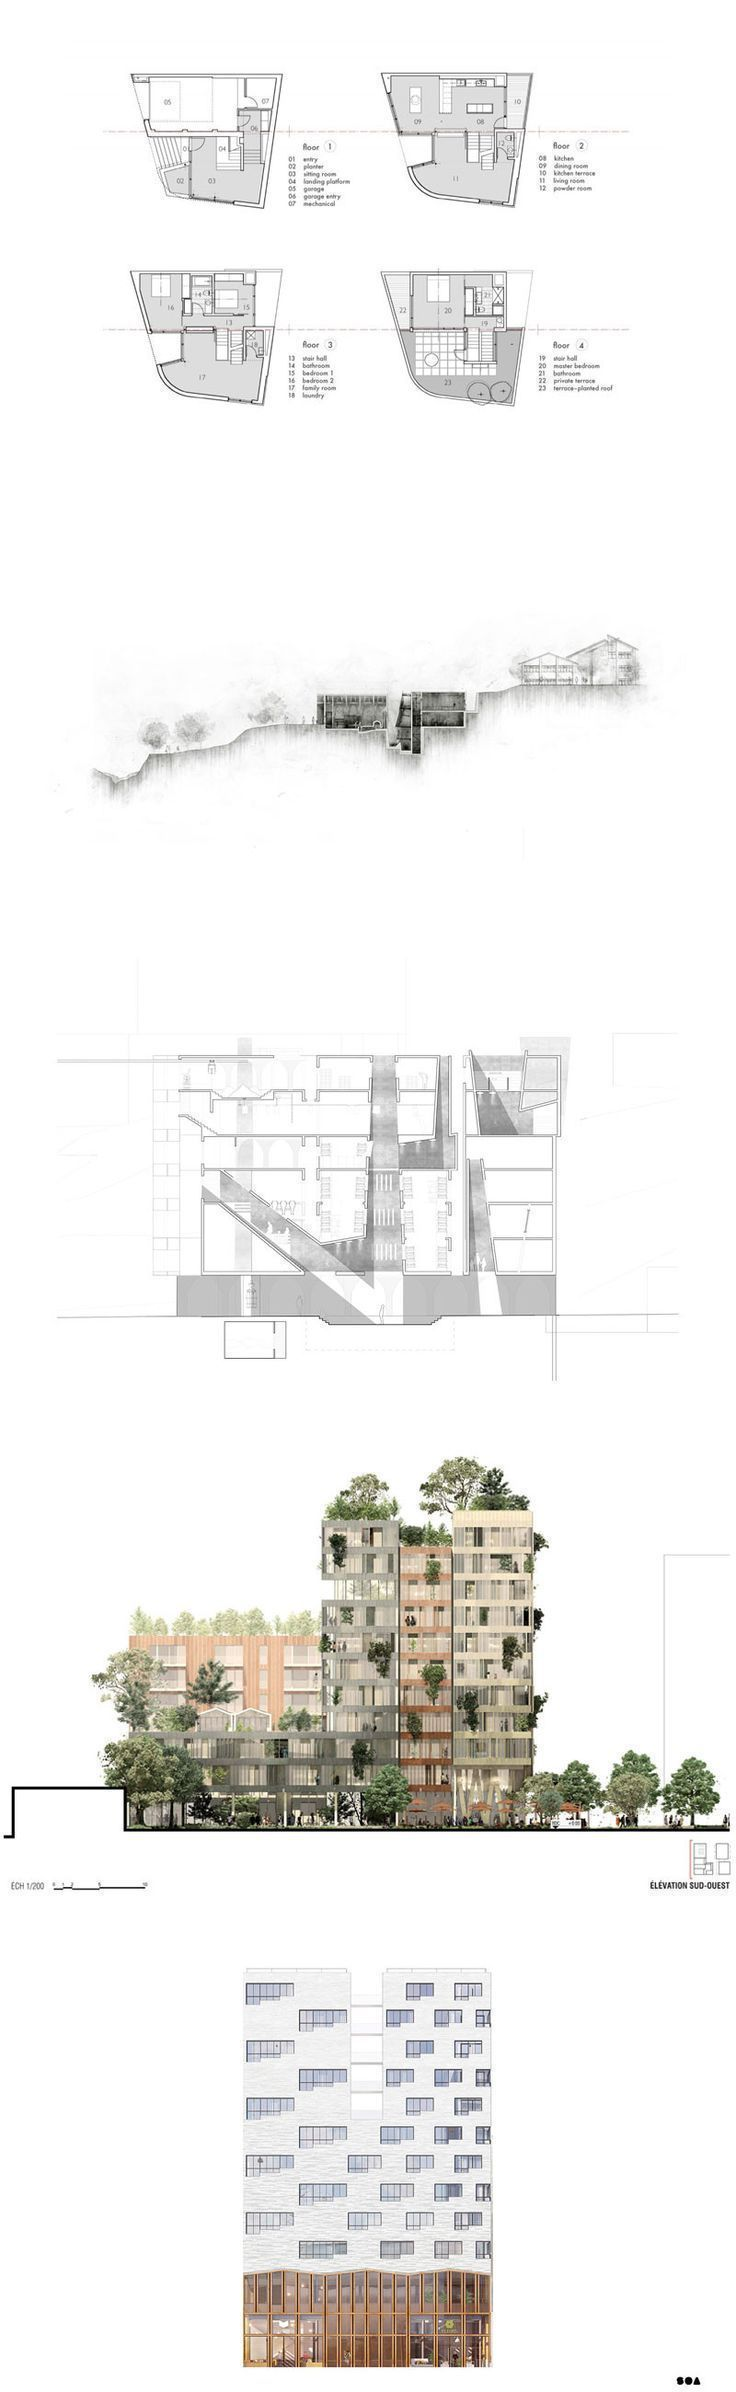 Views ARCHITECTURAL Architectural Elevations Gallery